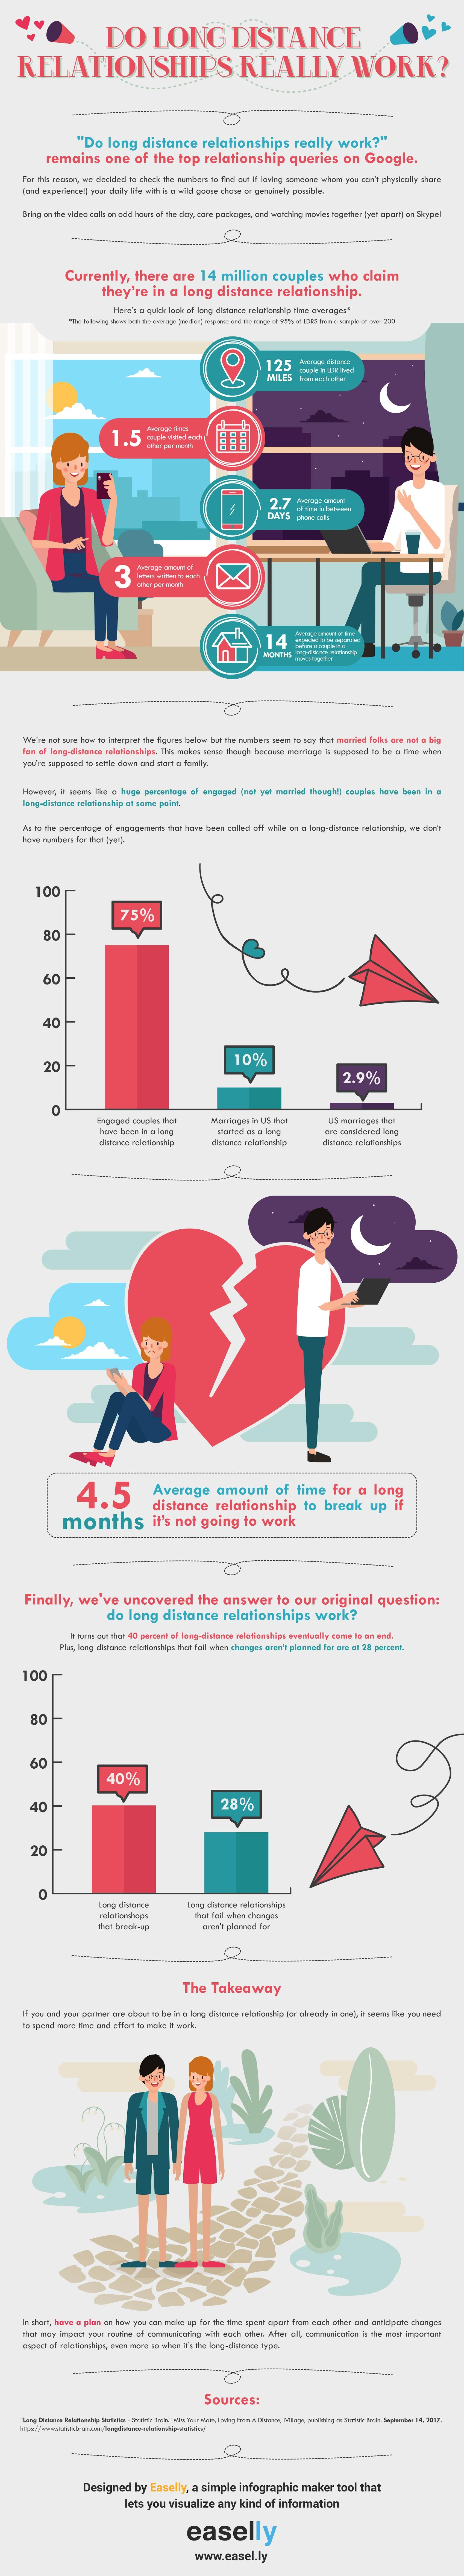 Do Long Distance Relationships Really Work?